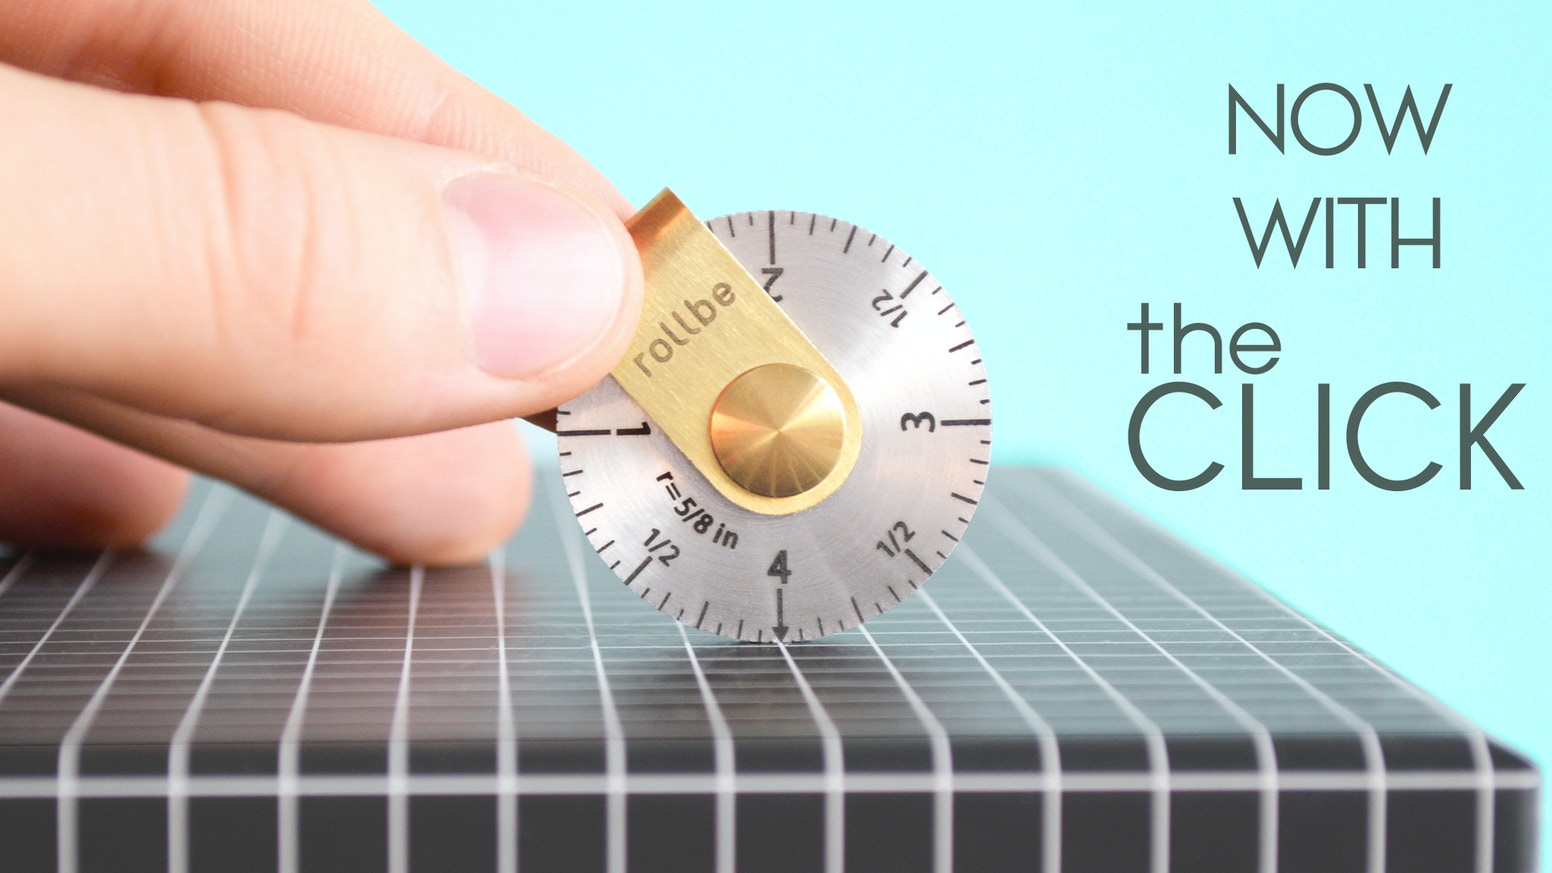 Stainless steel ruler, designed to measure just about anything and easily fit in your pocket.